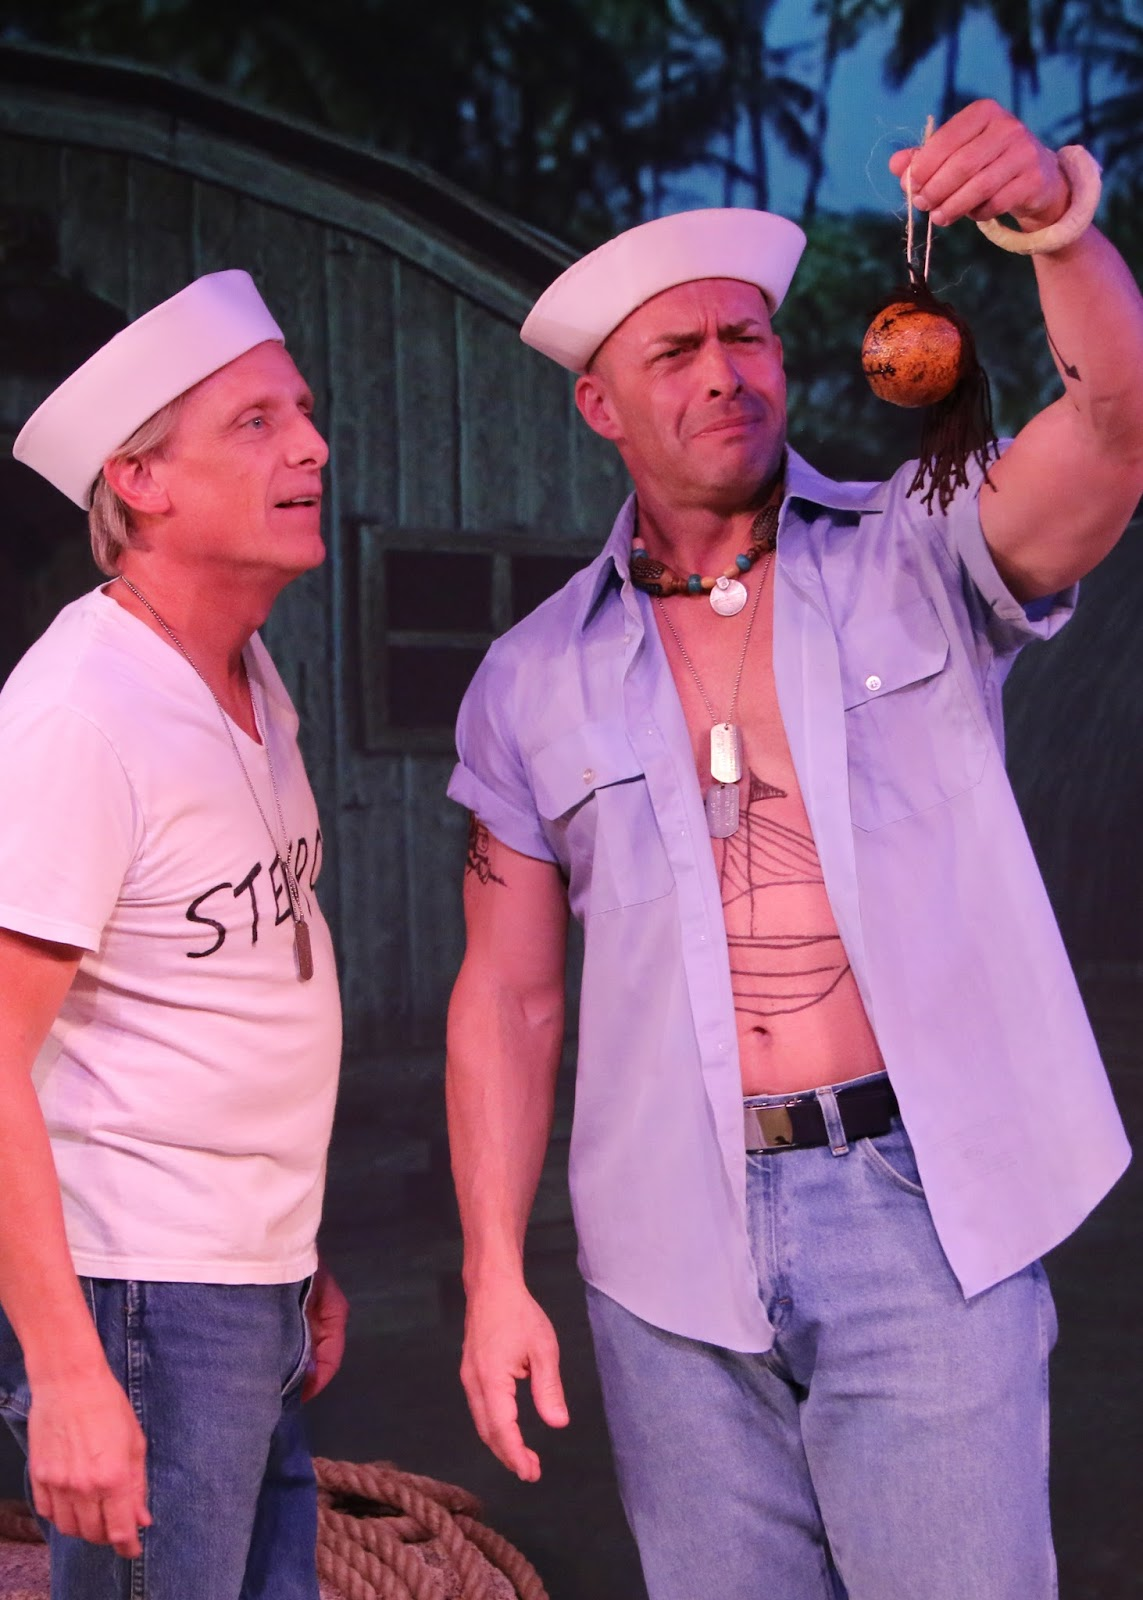 Fountain Hills Theatre. 2015. South Pacific. Matt McDonald (Billis) and an unidentified cast member. (Photograph courtesy of the theater)